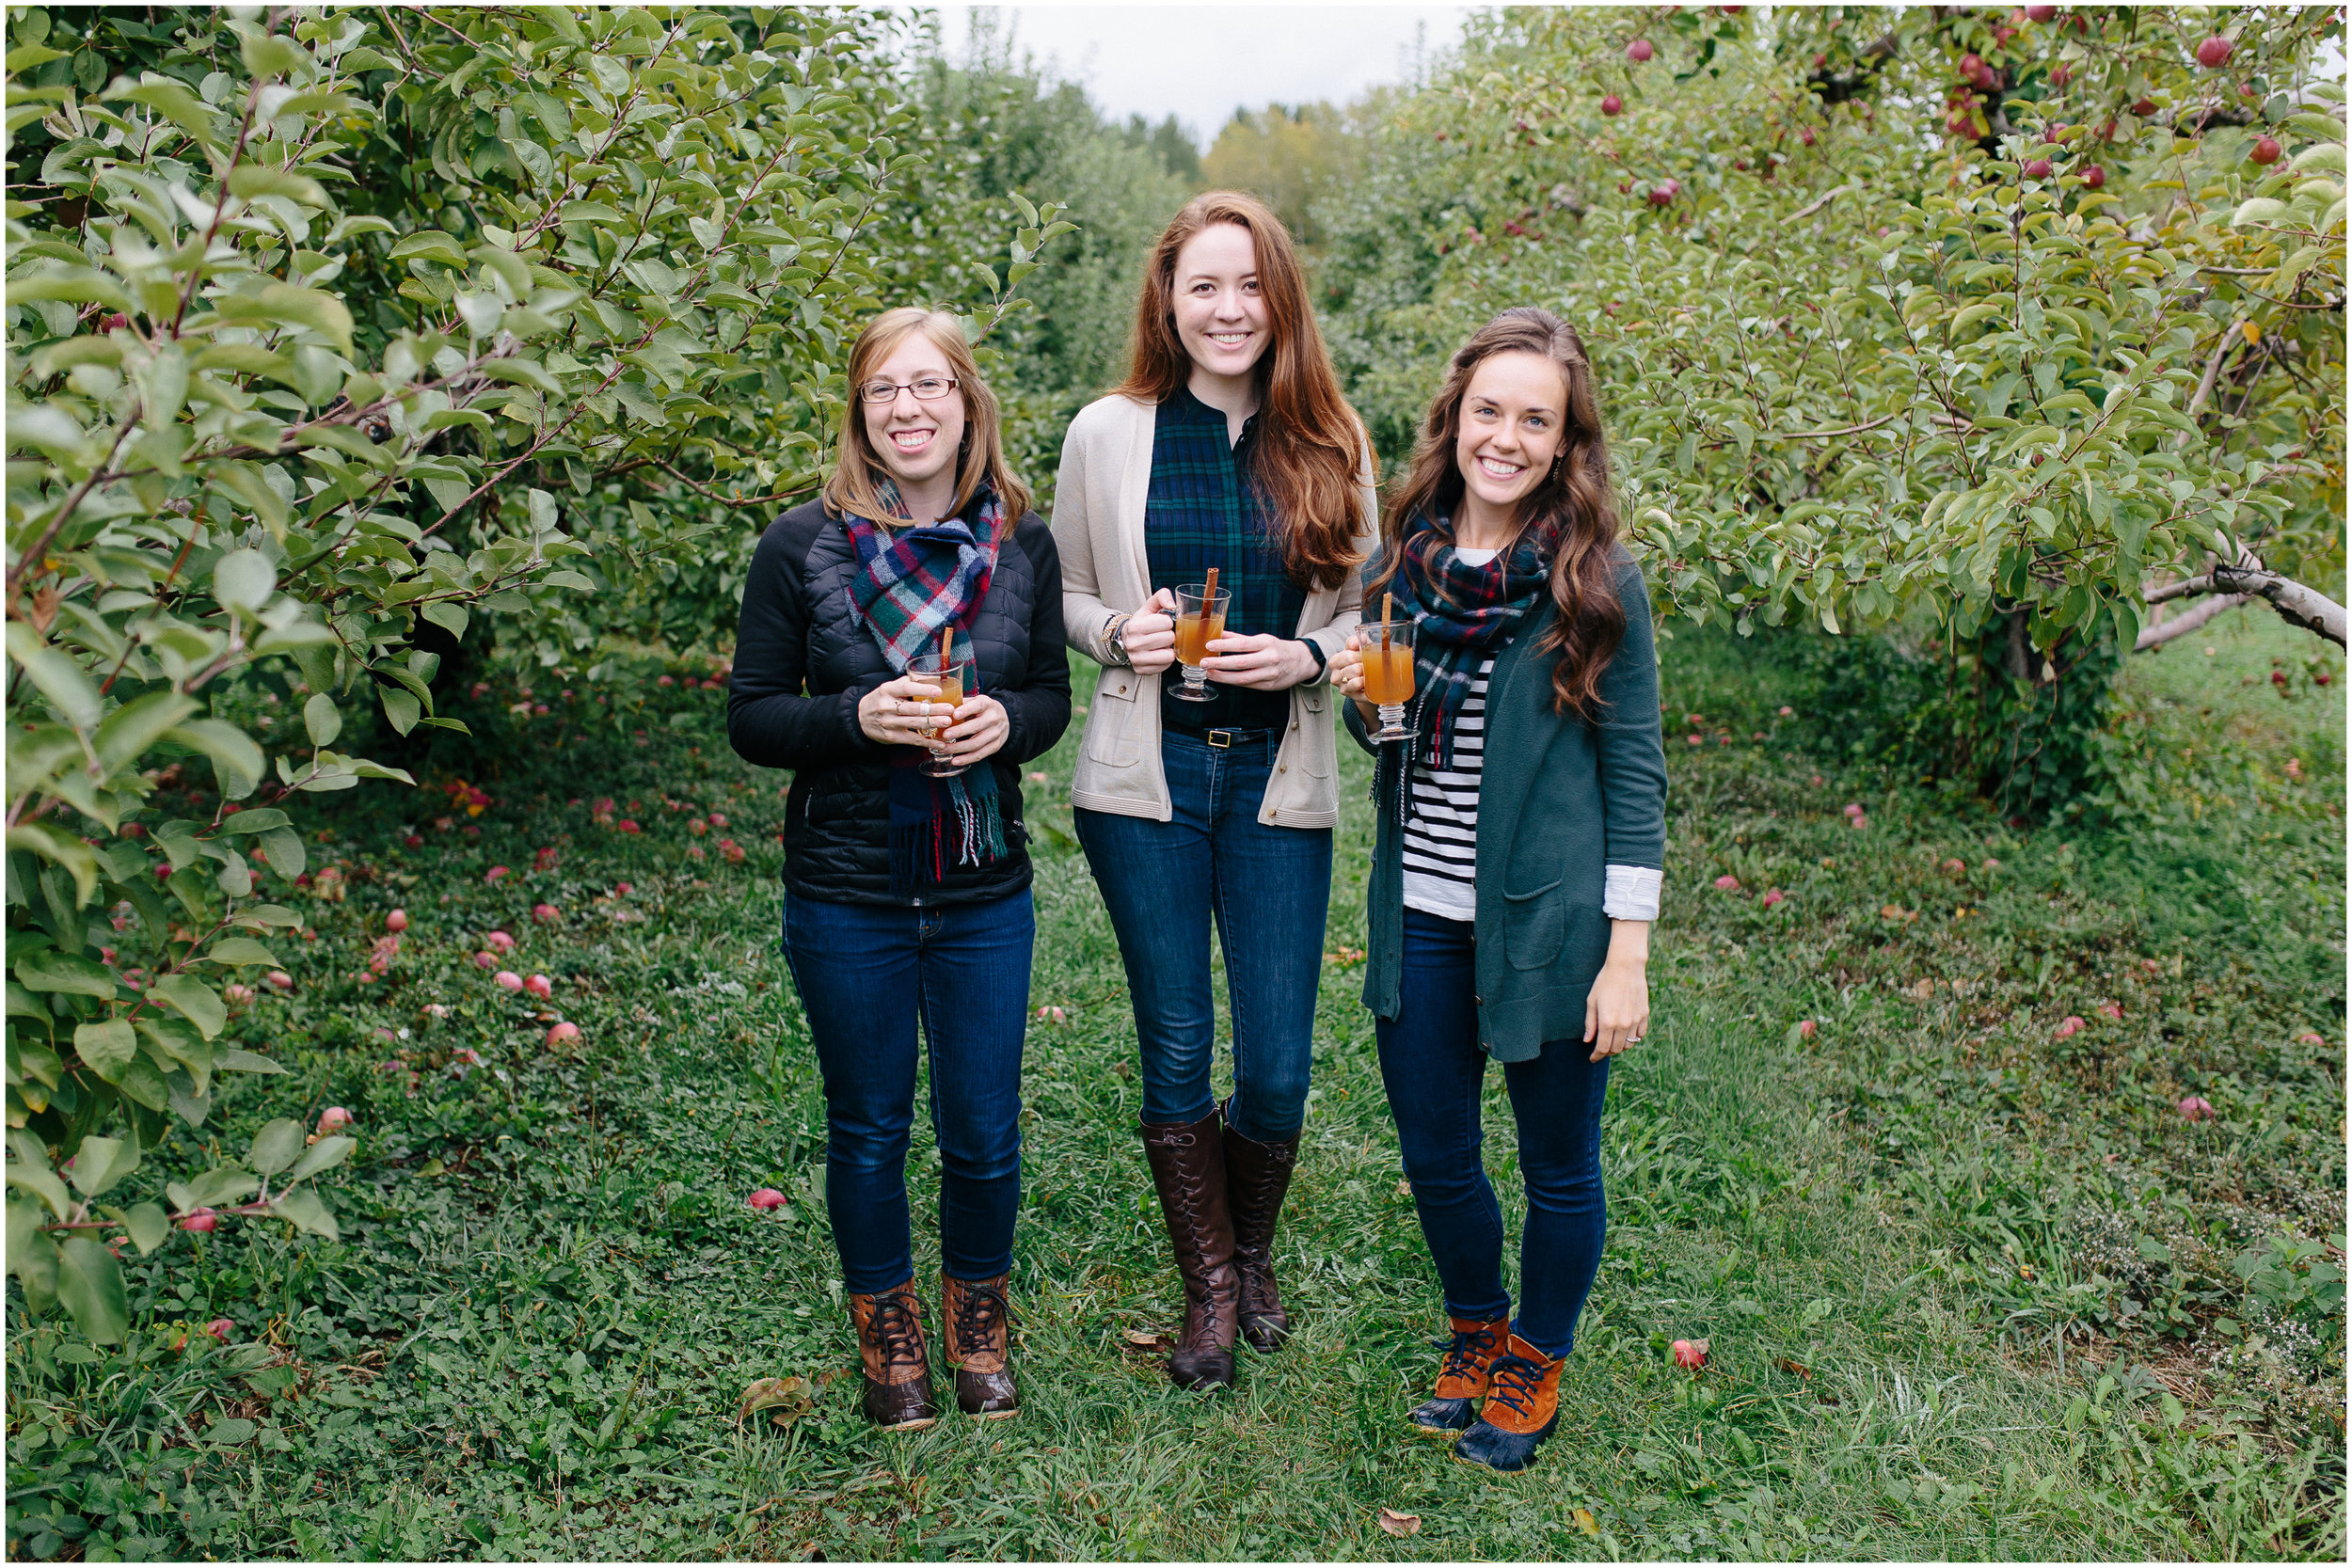 Girl friends smiling in an apple orchard, holding hot apple cider with cinnamon sticks, cute scarves, trendy